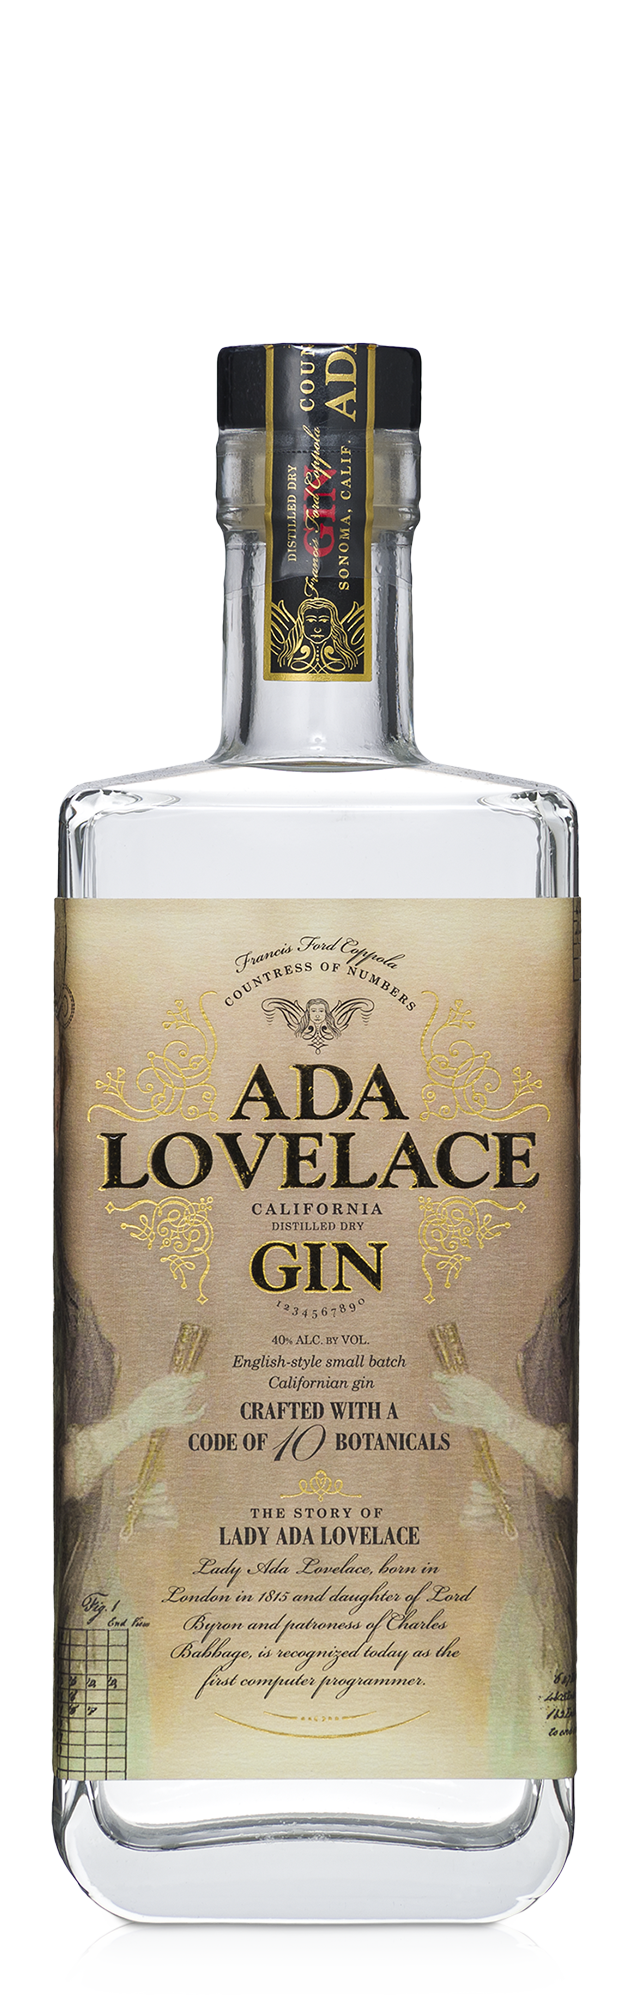 A bottle of Ada Lovelace Gin.